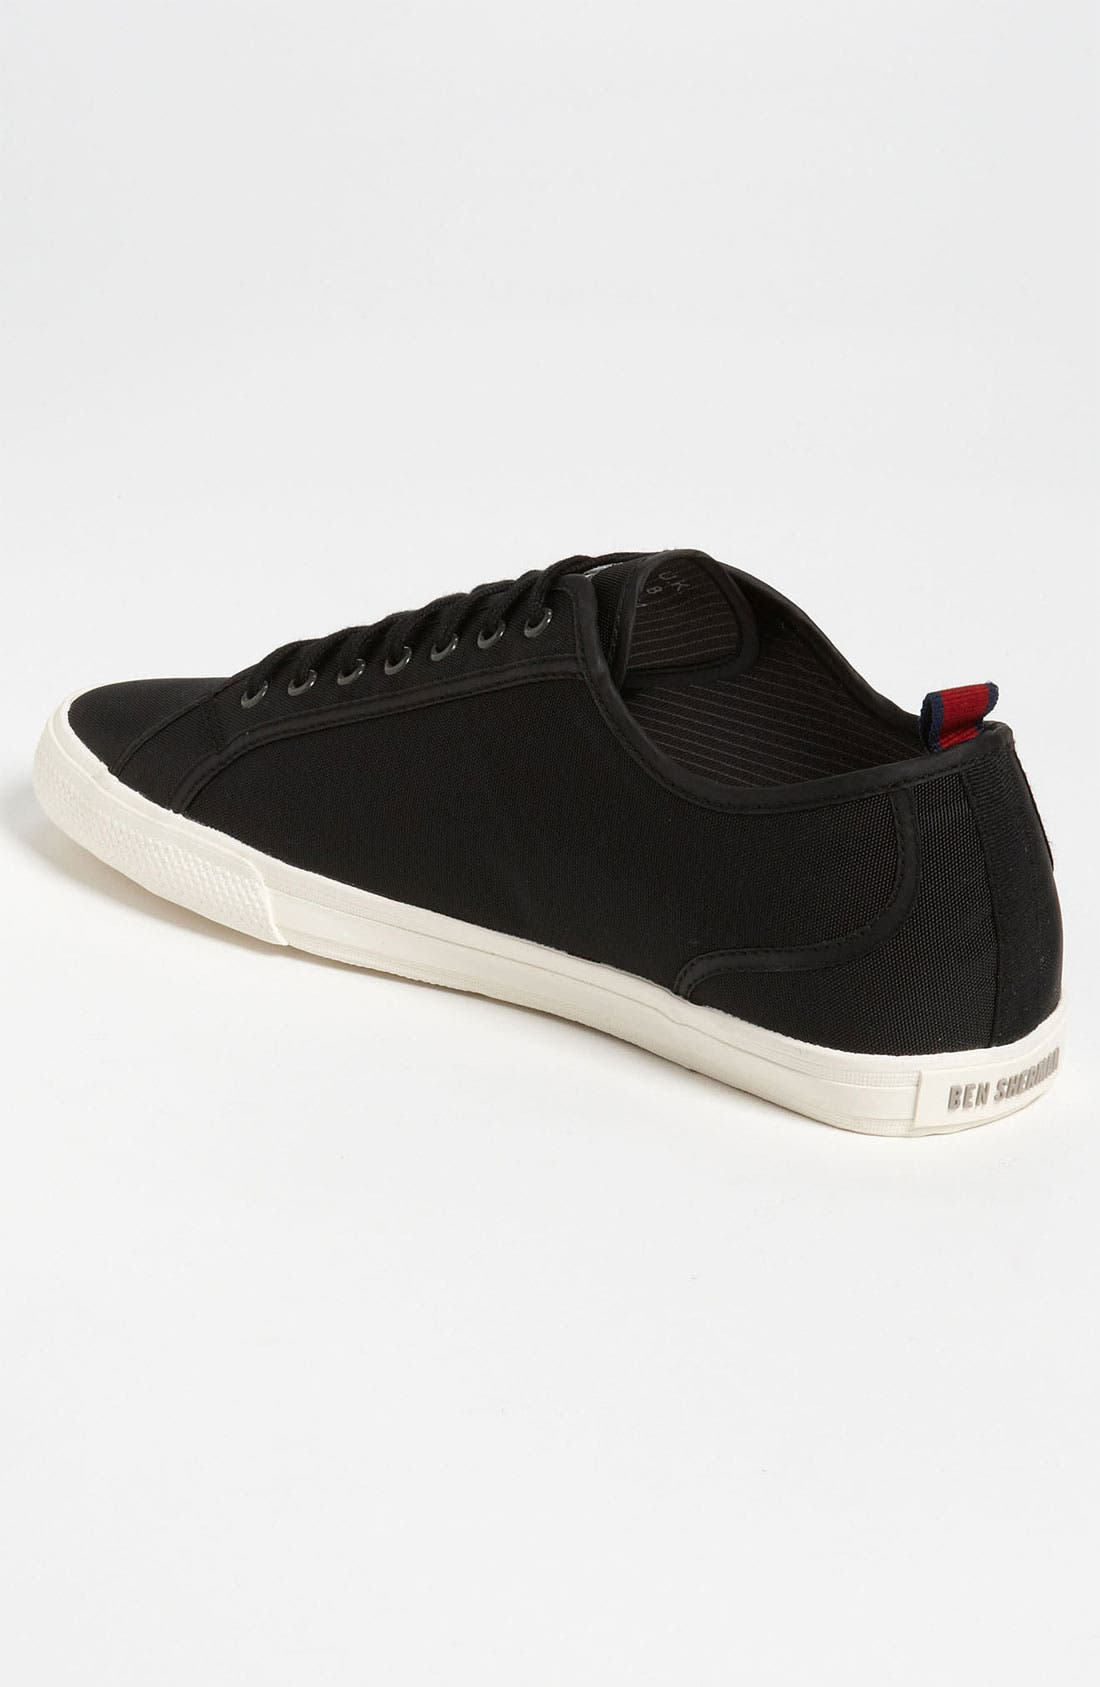 Alternate Image 2  - Ben Sherman 'Breckon' Sneaker